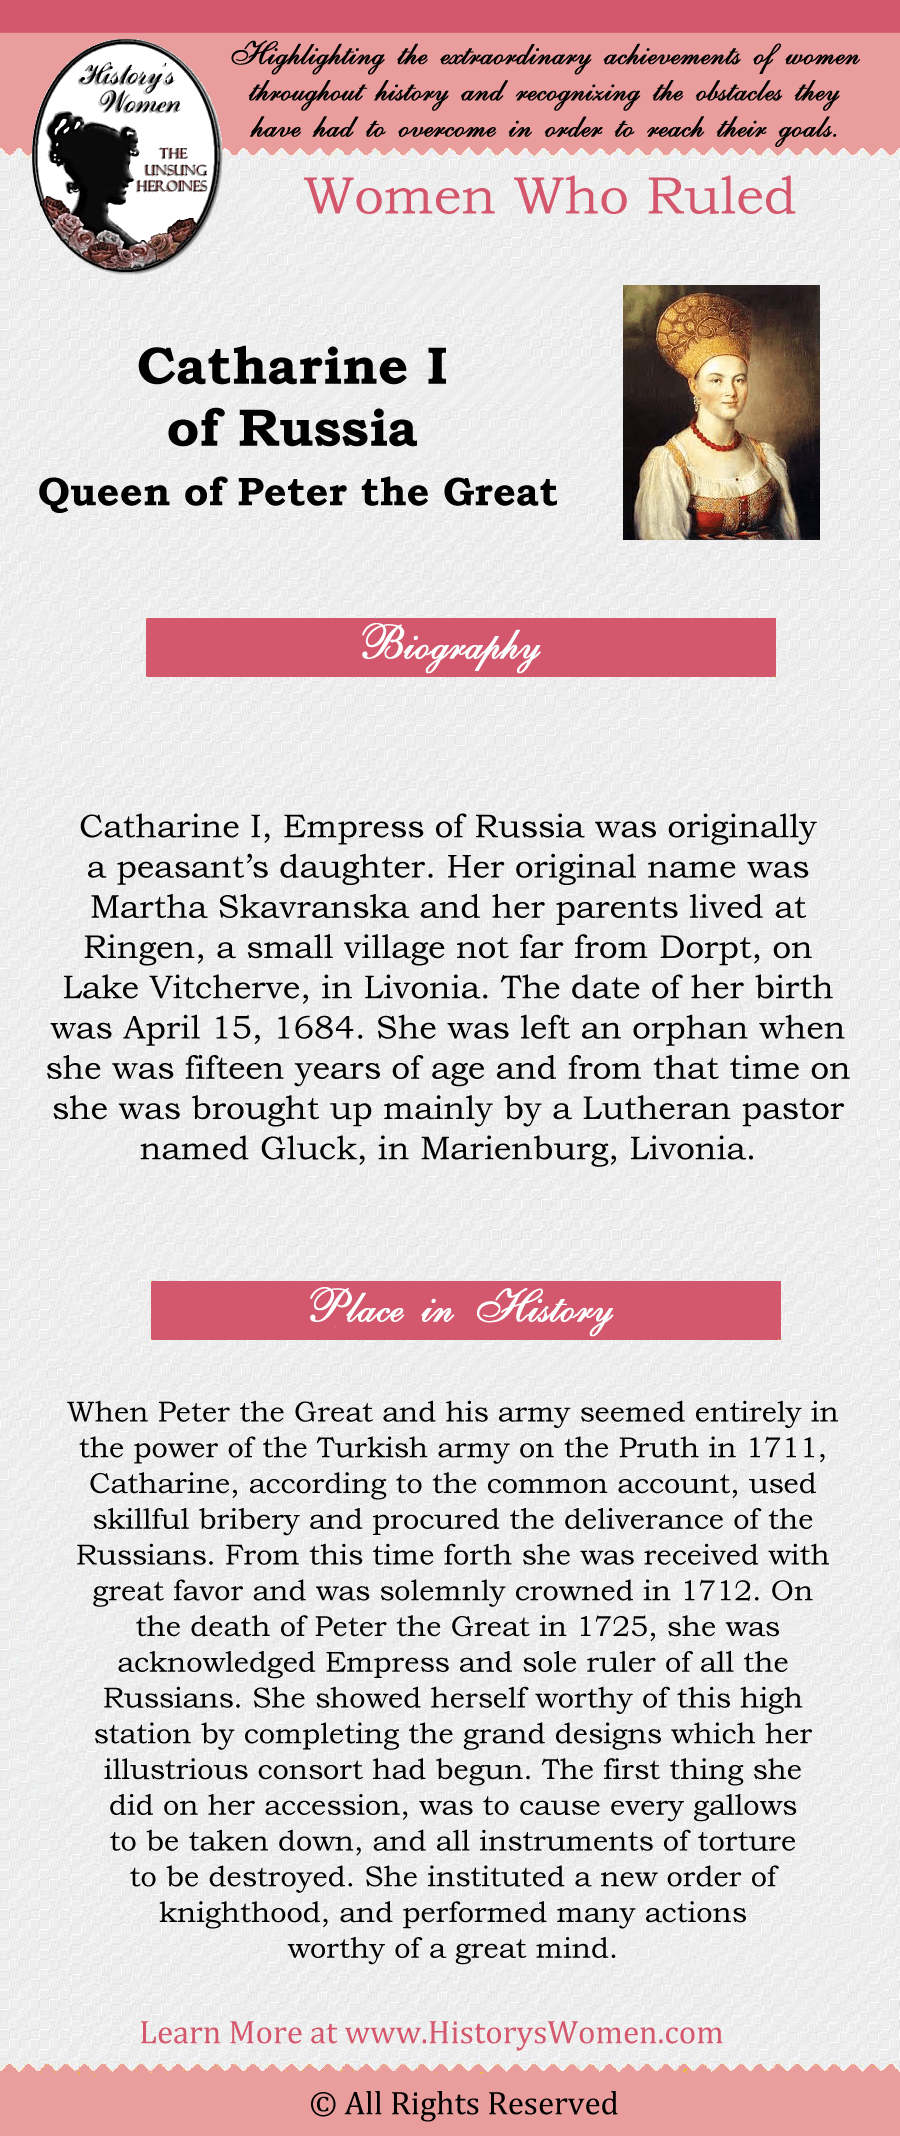 Women Who Ruled: Catherine I of Russia